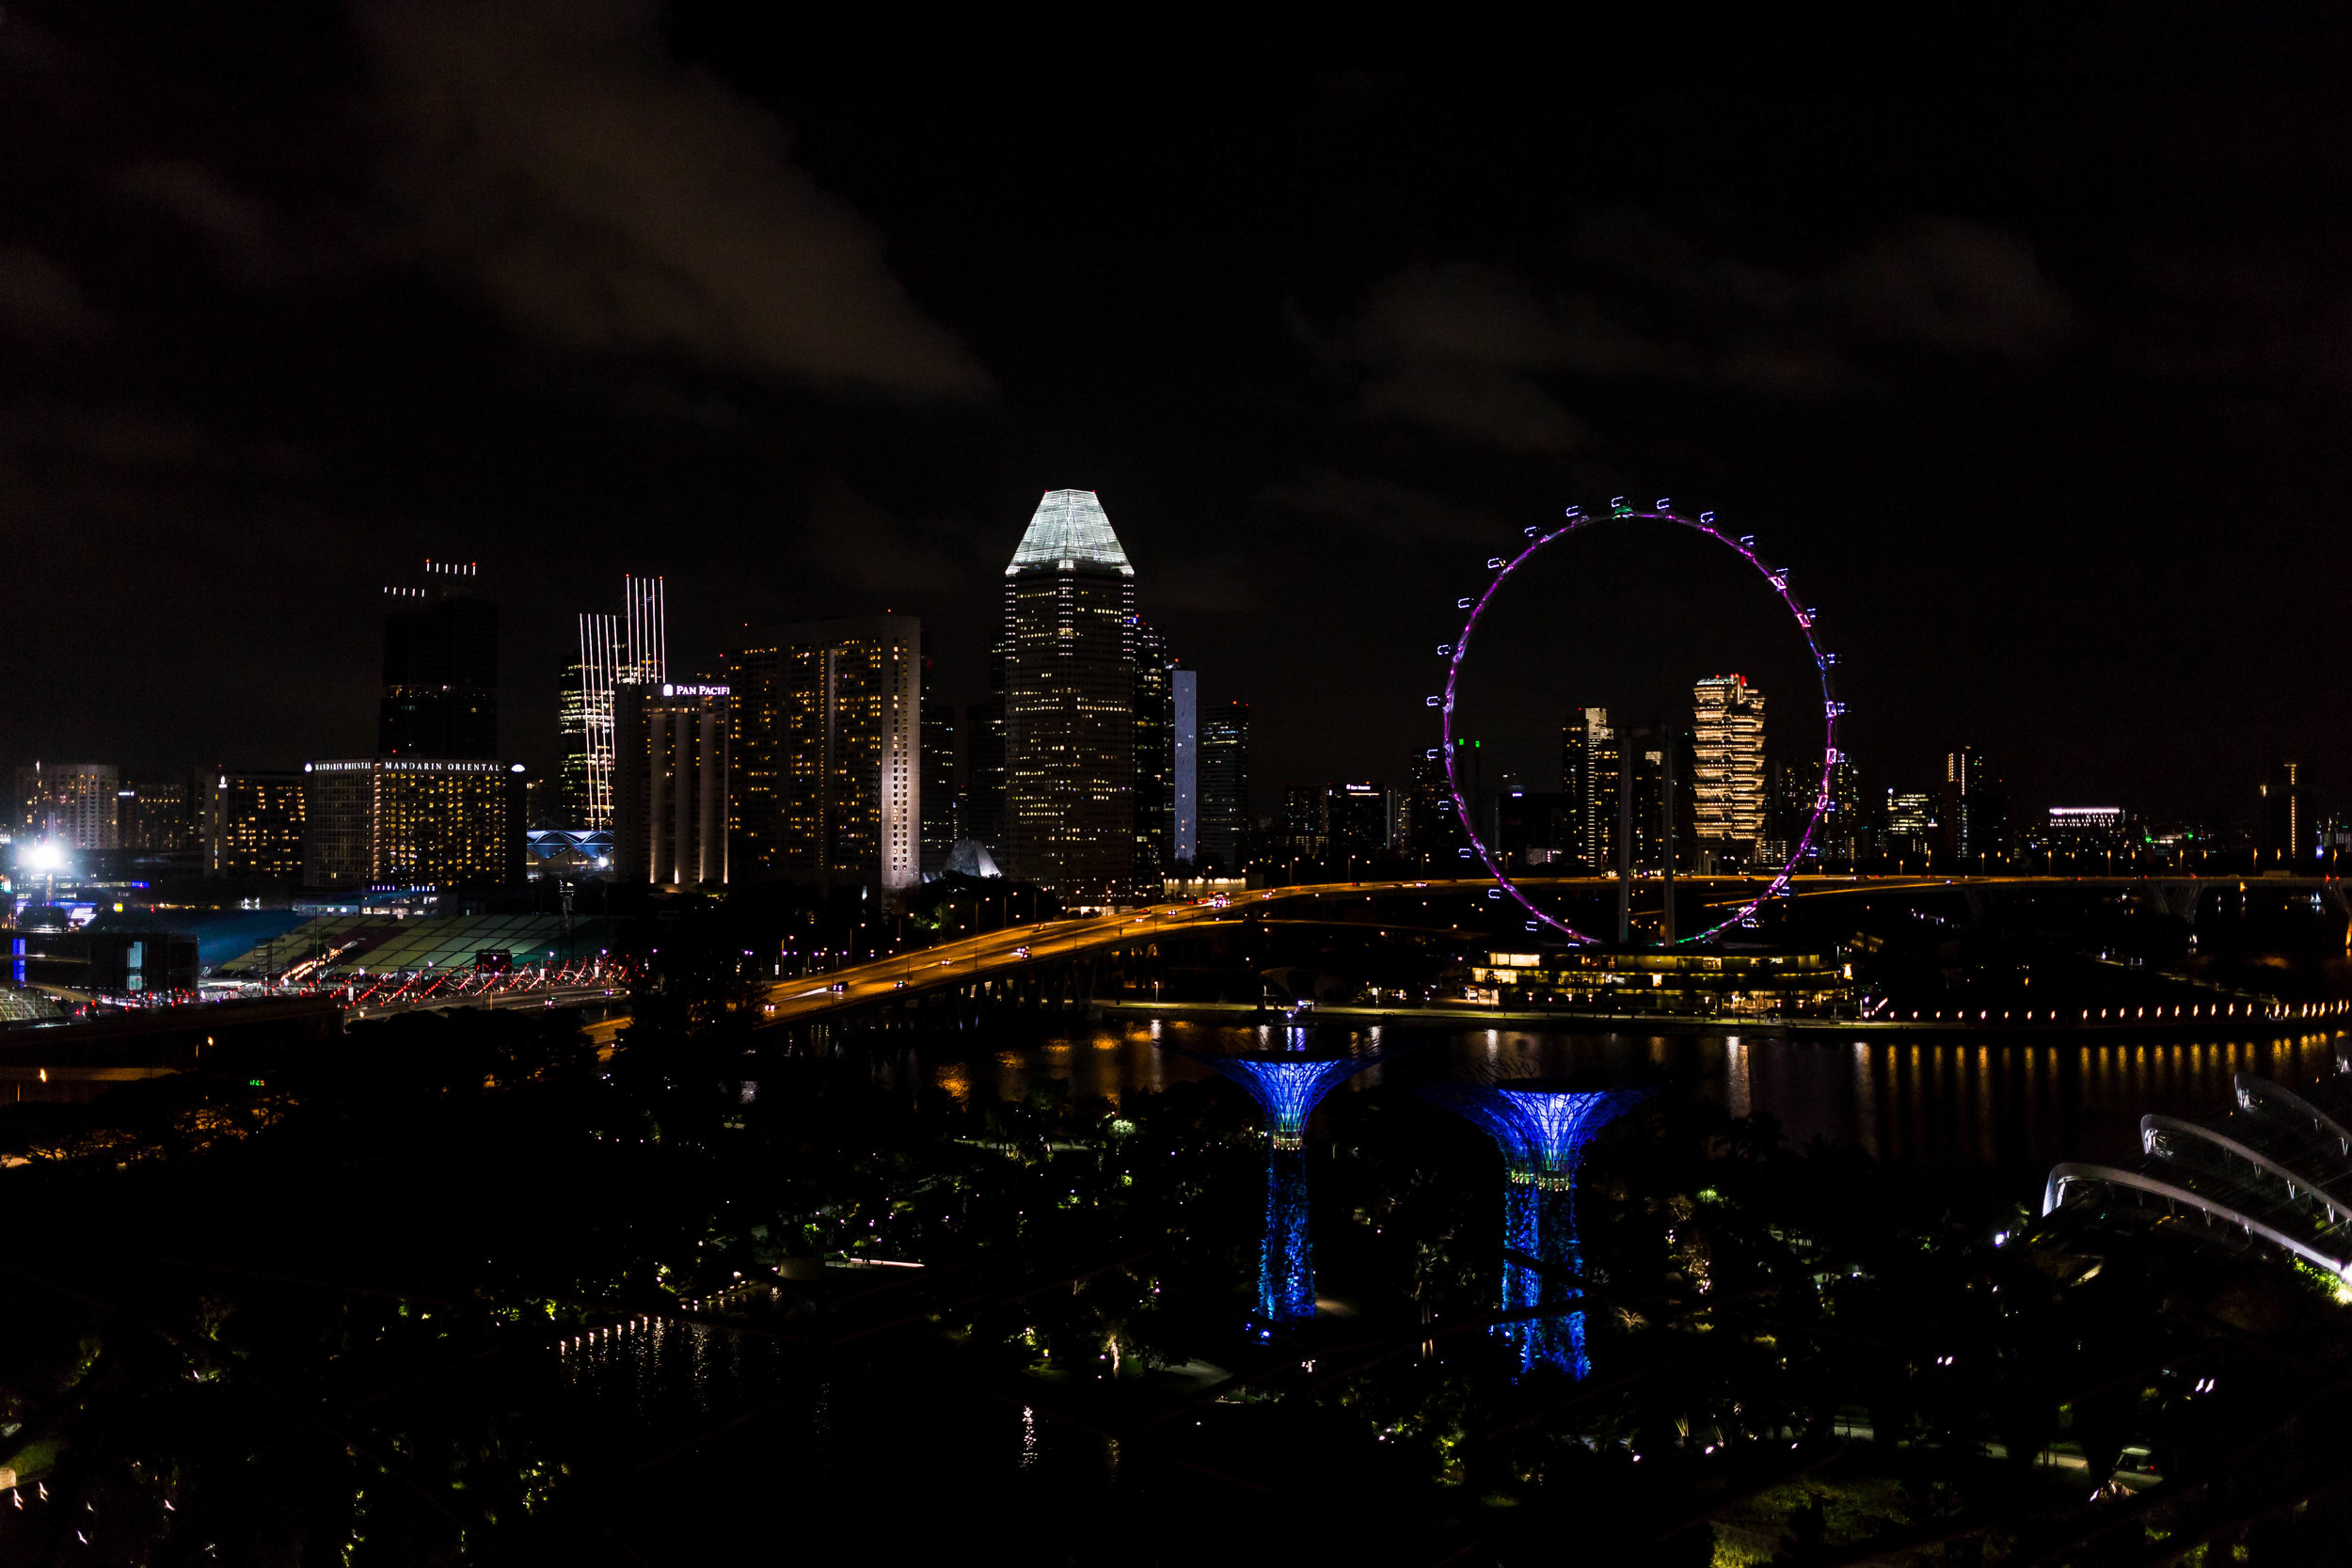 Modern day Singapura is dazzling. - The skyline from Marina Bay Park is awe inspiring.  The 360 degree view from atop the Supertree gives you views of the Port as well as the downtown skyline.